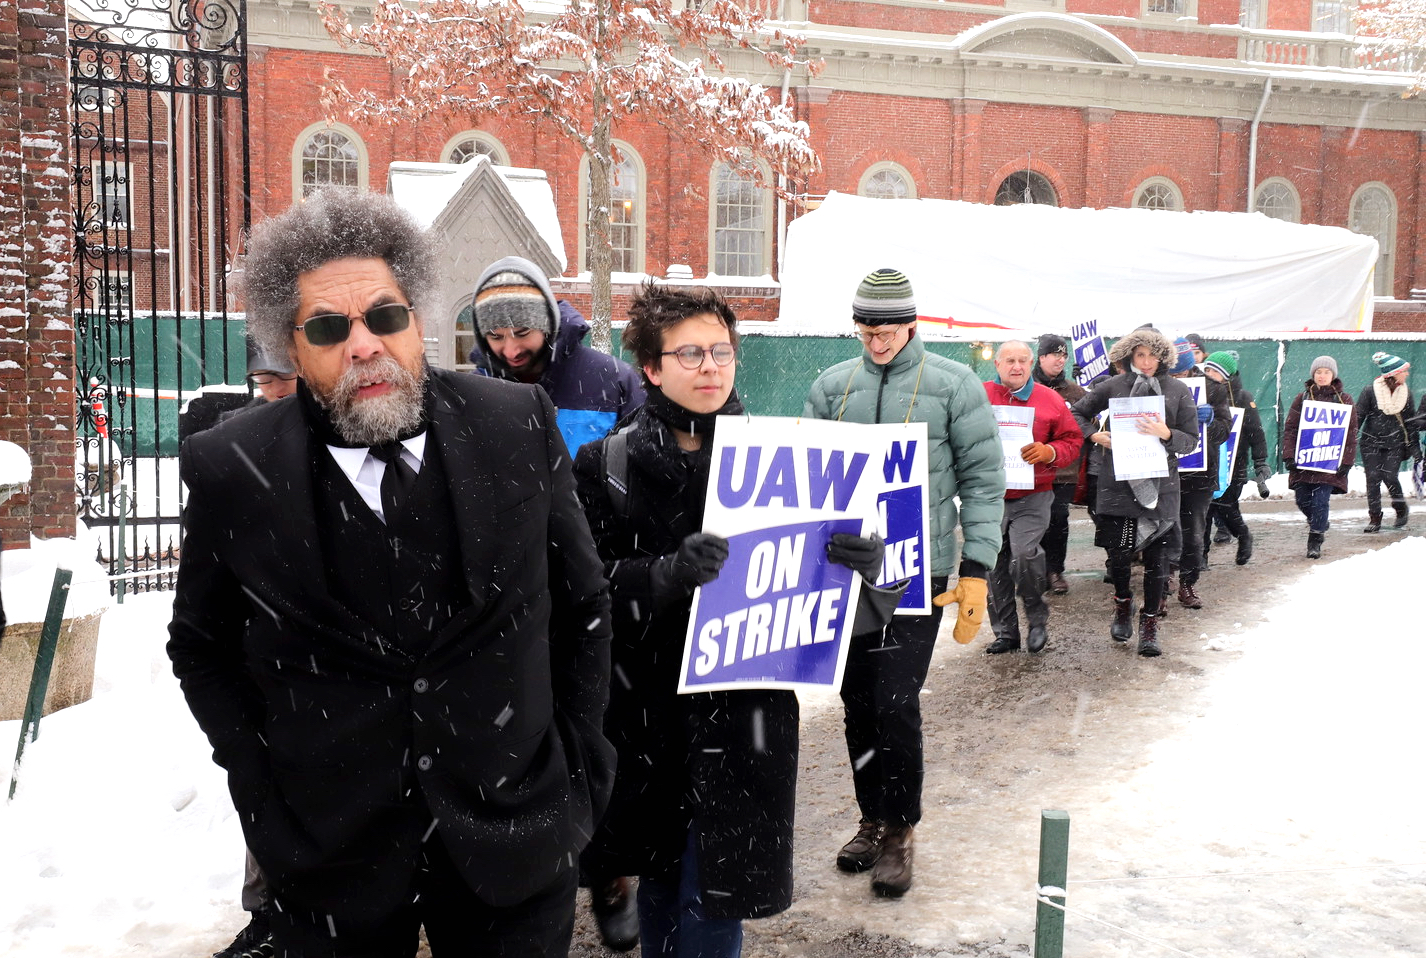 Practice of Public Philosophy Cornel R. West '74 joined members of the Harvard Graduate Students Union - United Automobile Workers on the picket lines during their strike in 2019. West threatened to leave Harvard for a second time this week after he said the University dismissed his request to be considered for tenure.